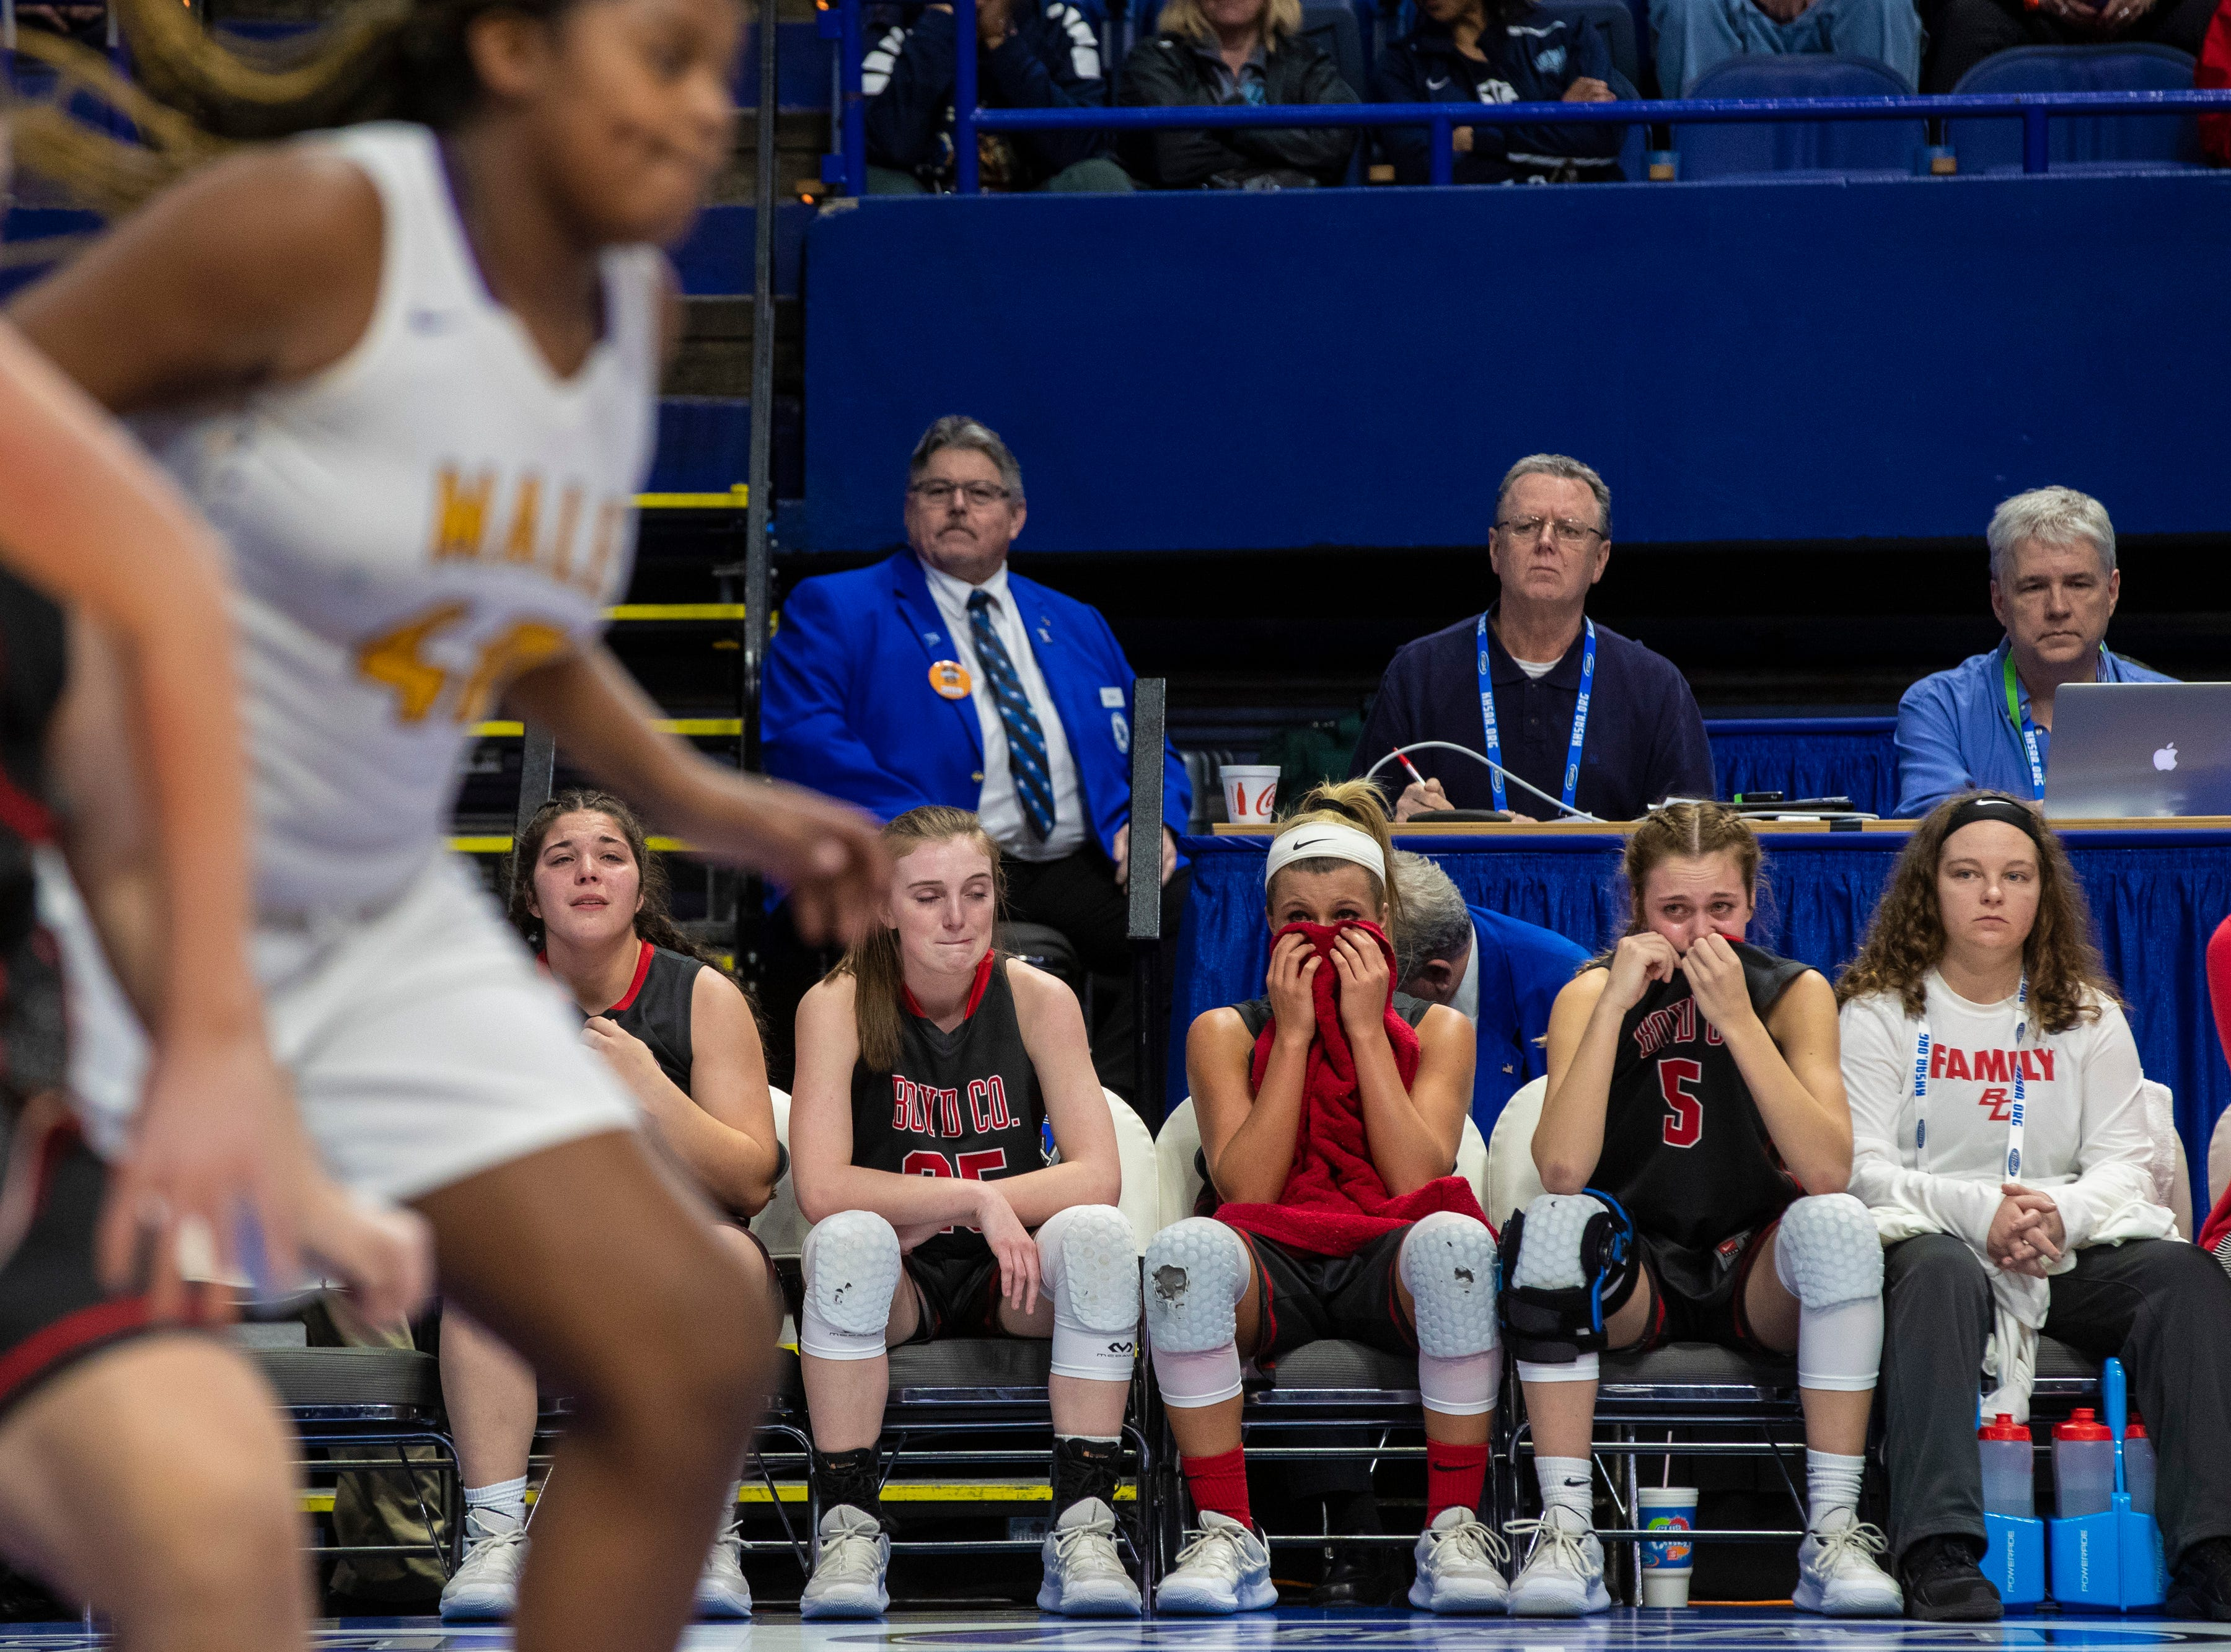 Boyd County players react in the final seconds of the game as Boyd County took on Louisville Male in the KHSAA state basketball tournament in Rupp Arena. Male eliminated Boyd County 74-56. March 14, 2019